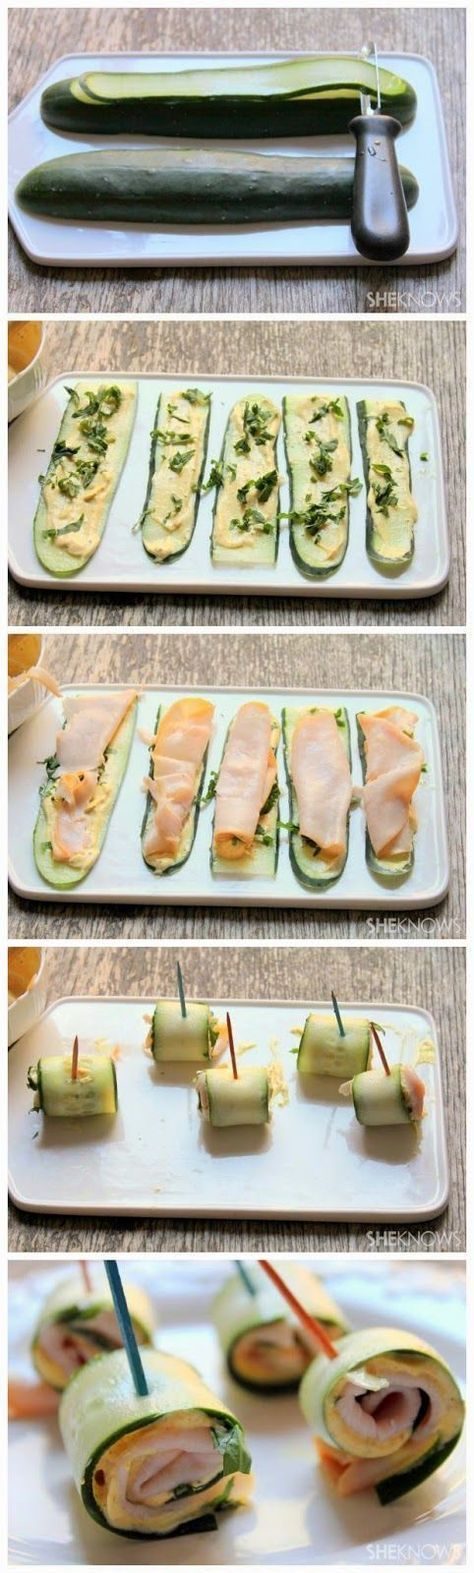 "Good protein snacks Cucumber rollups with hummus and turkey [can use zucchini too] #lowcarb #healthy #protein ""cucumbers (or use zucchini) 1-1/2 cups low-fat Greek yogurt (or use hummus) 1 tablespoon"